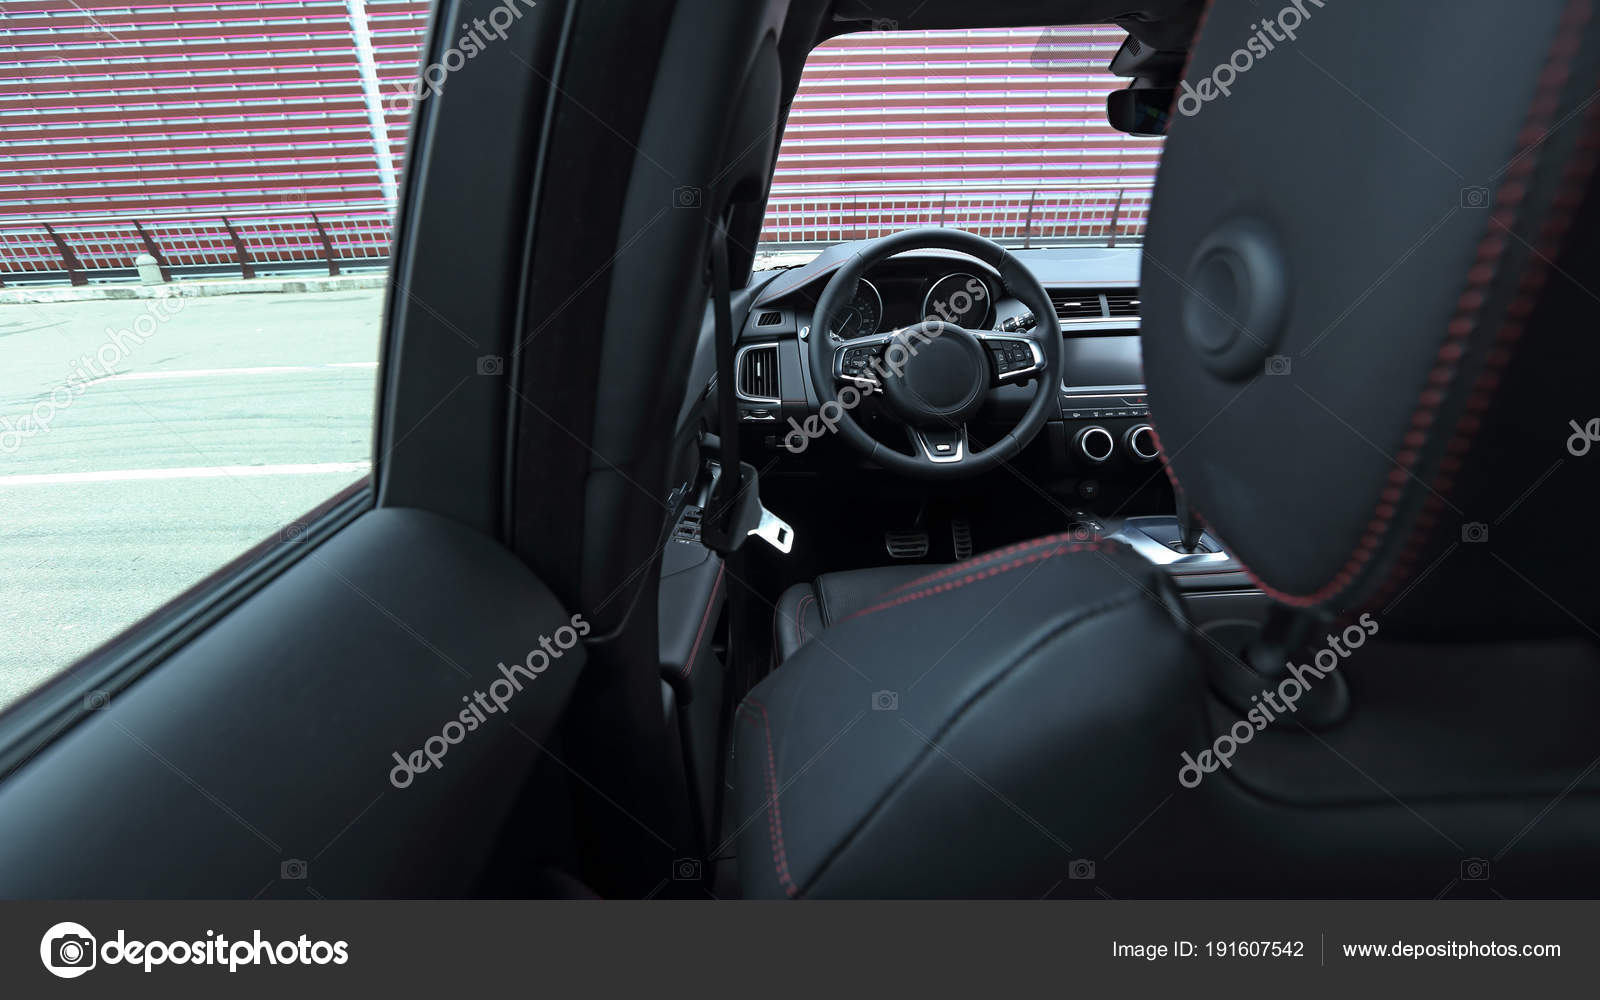 https://st3.depositphotos.com/4598939/19160/i/1600/depositphotos_191607542-stock-photo-steering-wheel-dashboard-car-leather.jpg